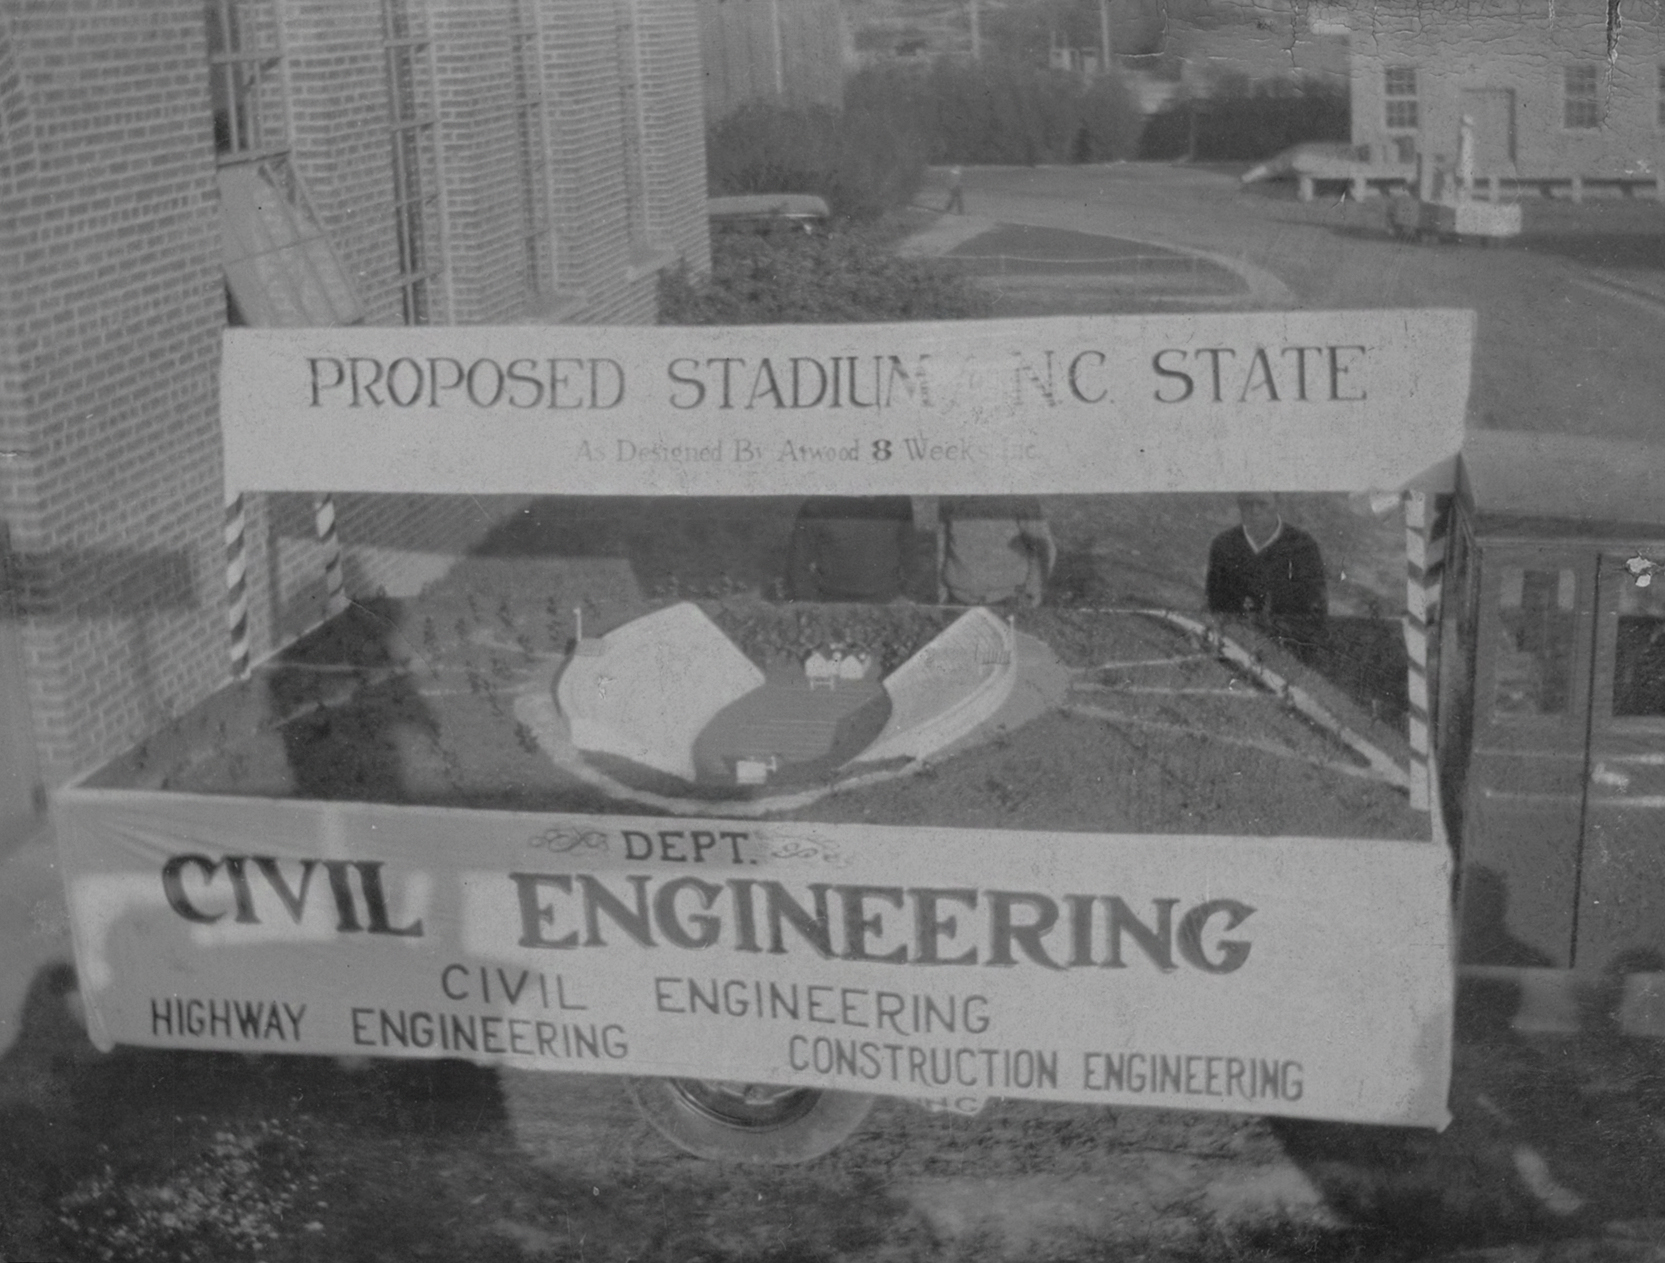 1931 image of truck with model of then proposed NCState stadium on truck bed